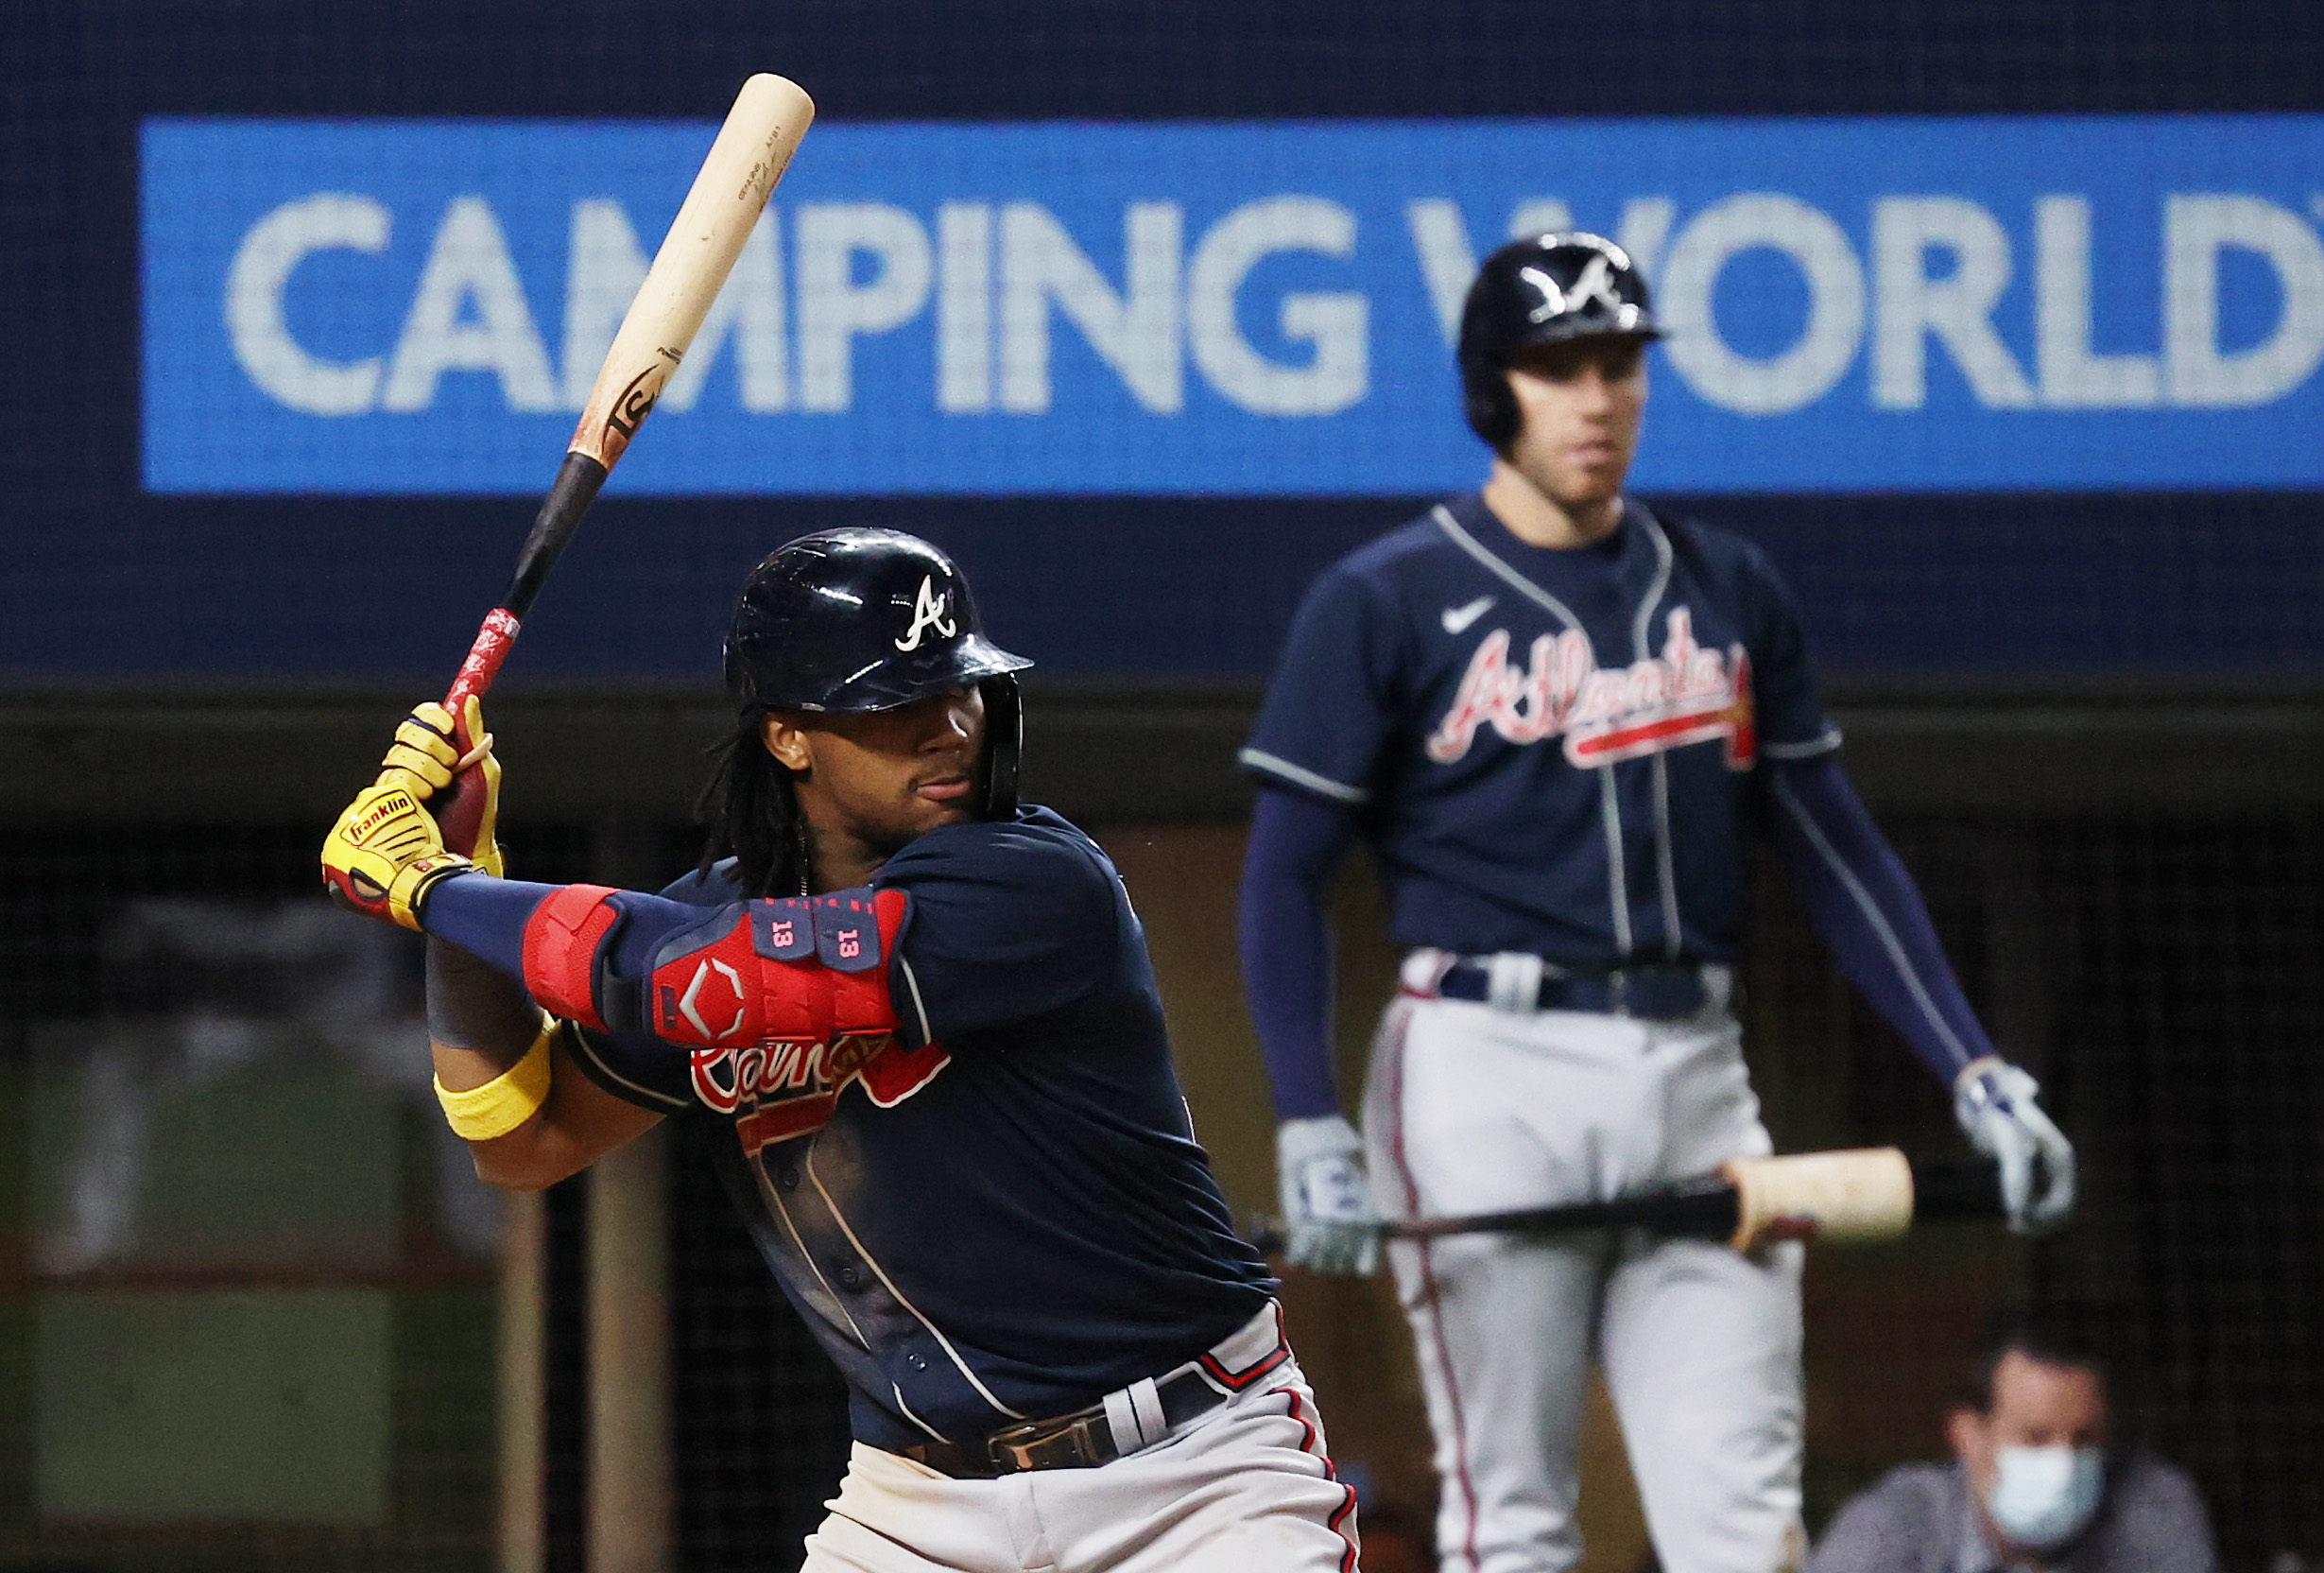 Ronald Acuna Jr. #13 of the Atlanta Braves at bat against the Los Angeles Dodgers during the seventh inning in Game Seven of the National League Championship Series at Globe Life Field on October 18, 2020 in Arlington, Texas.